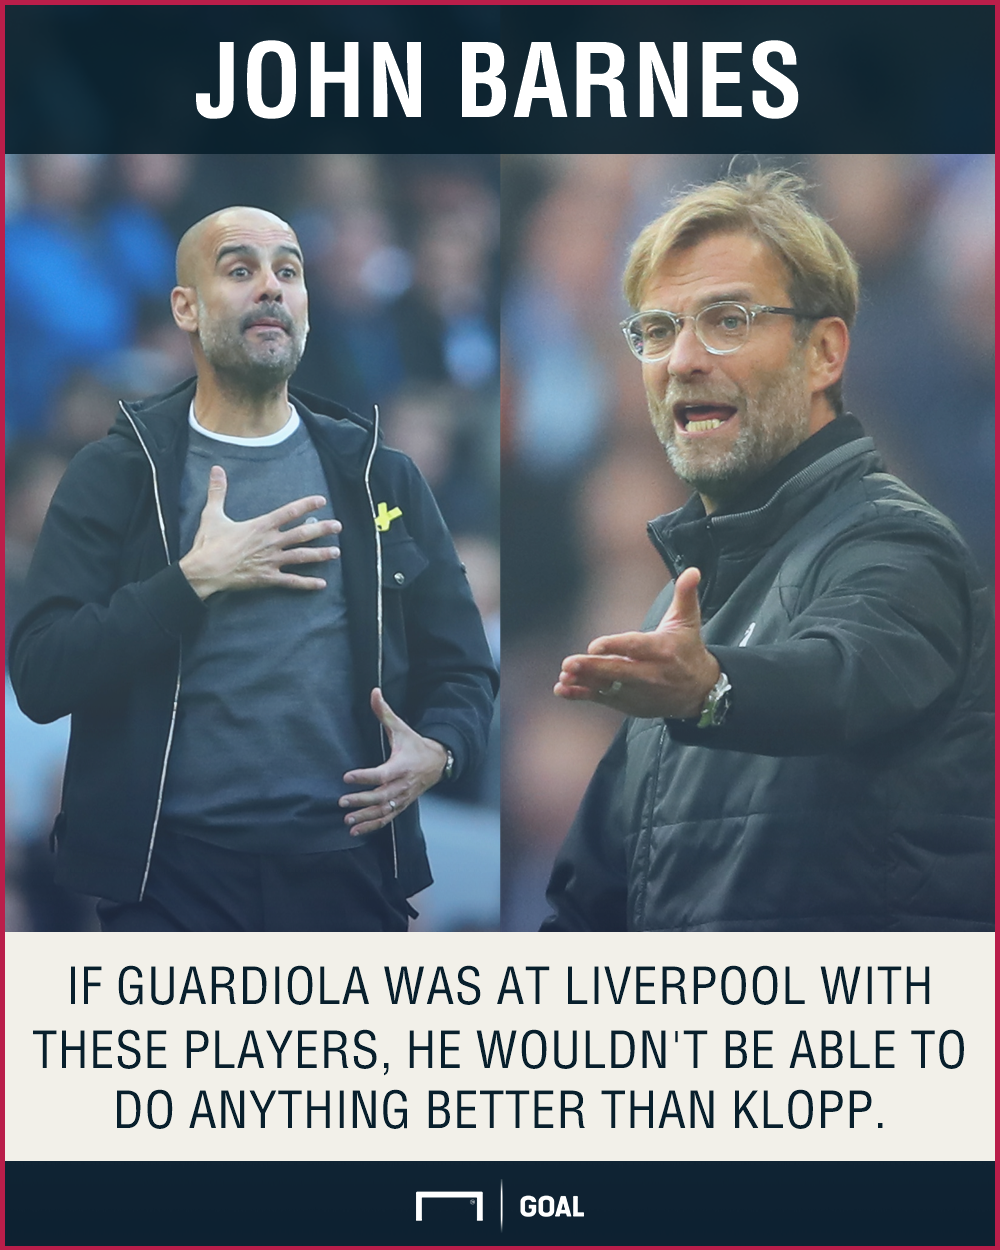 John Barnes Jurgen Klopp Pep Guardiola no better Liverpool